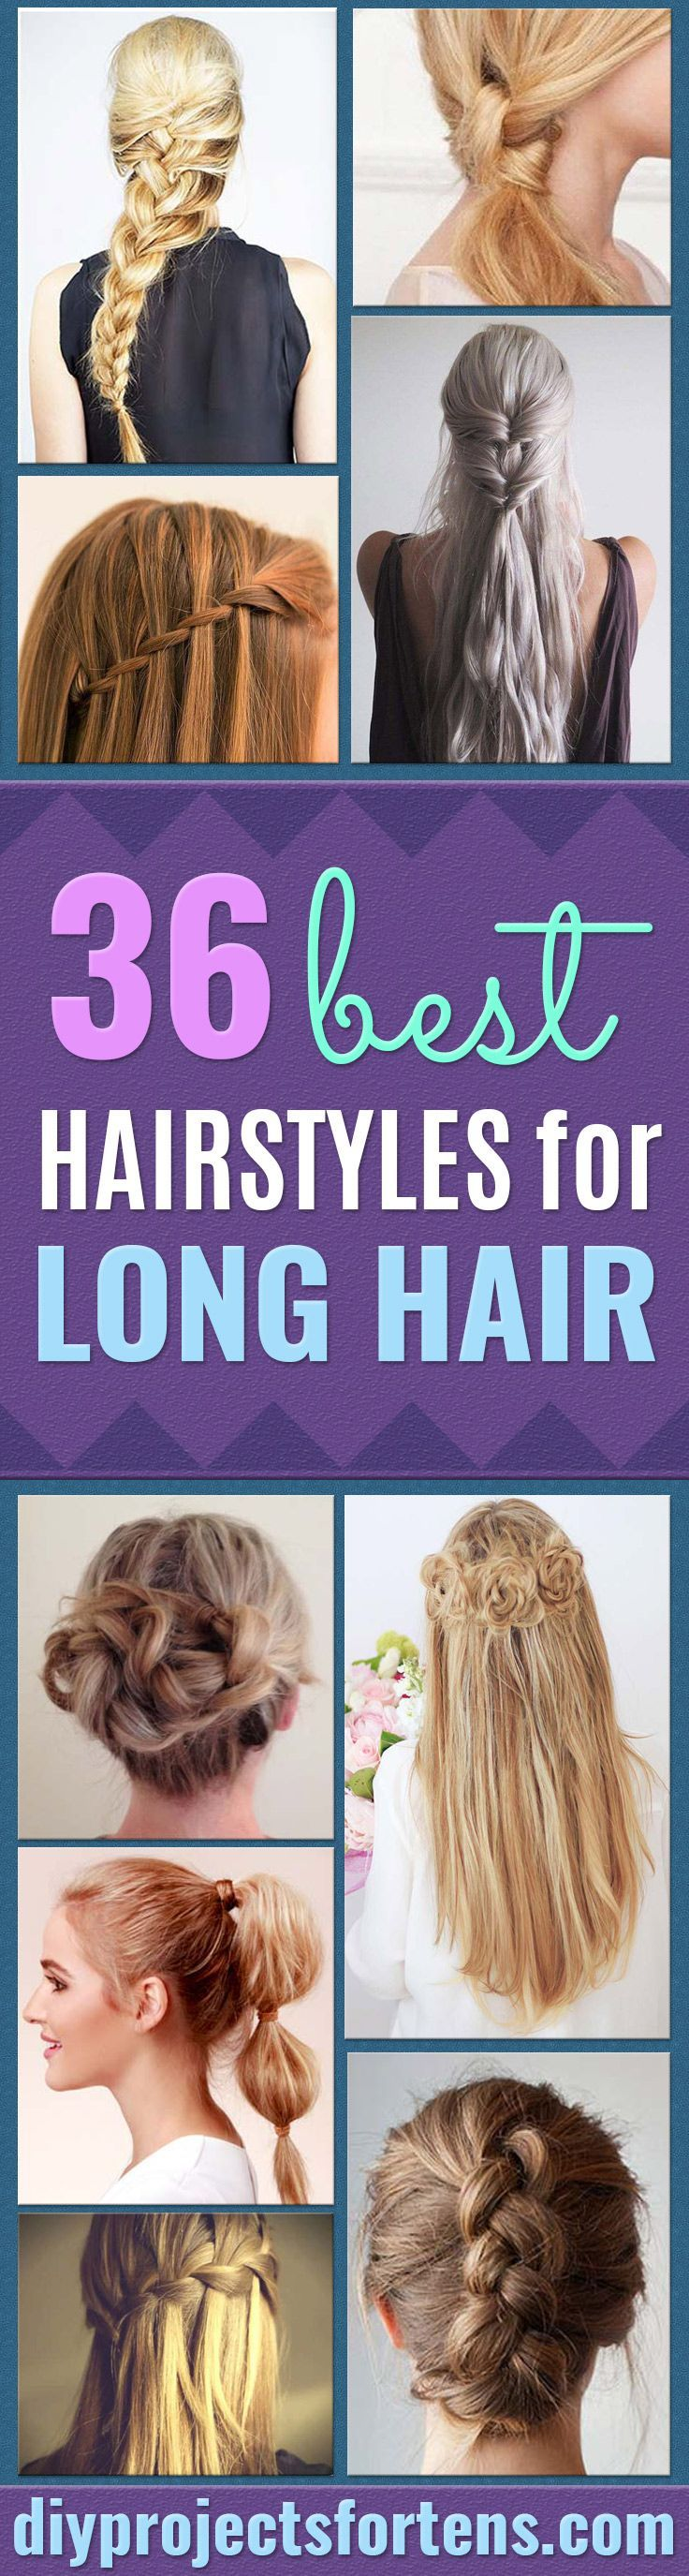 18 best Hairstyles images on Pinterest